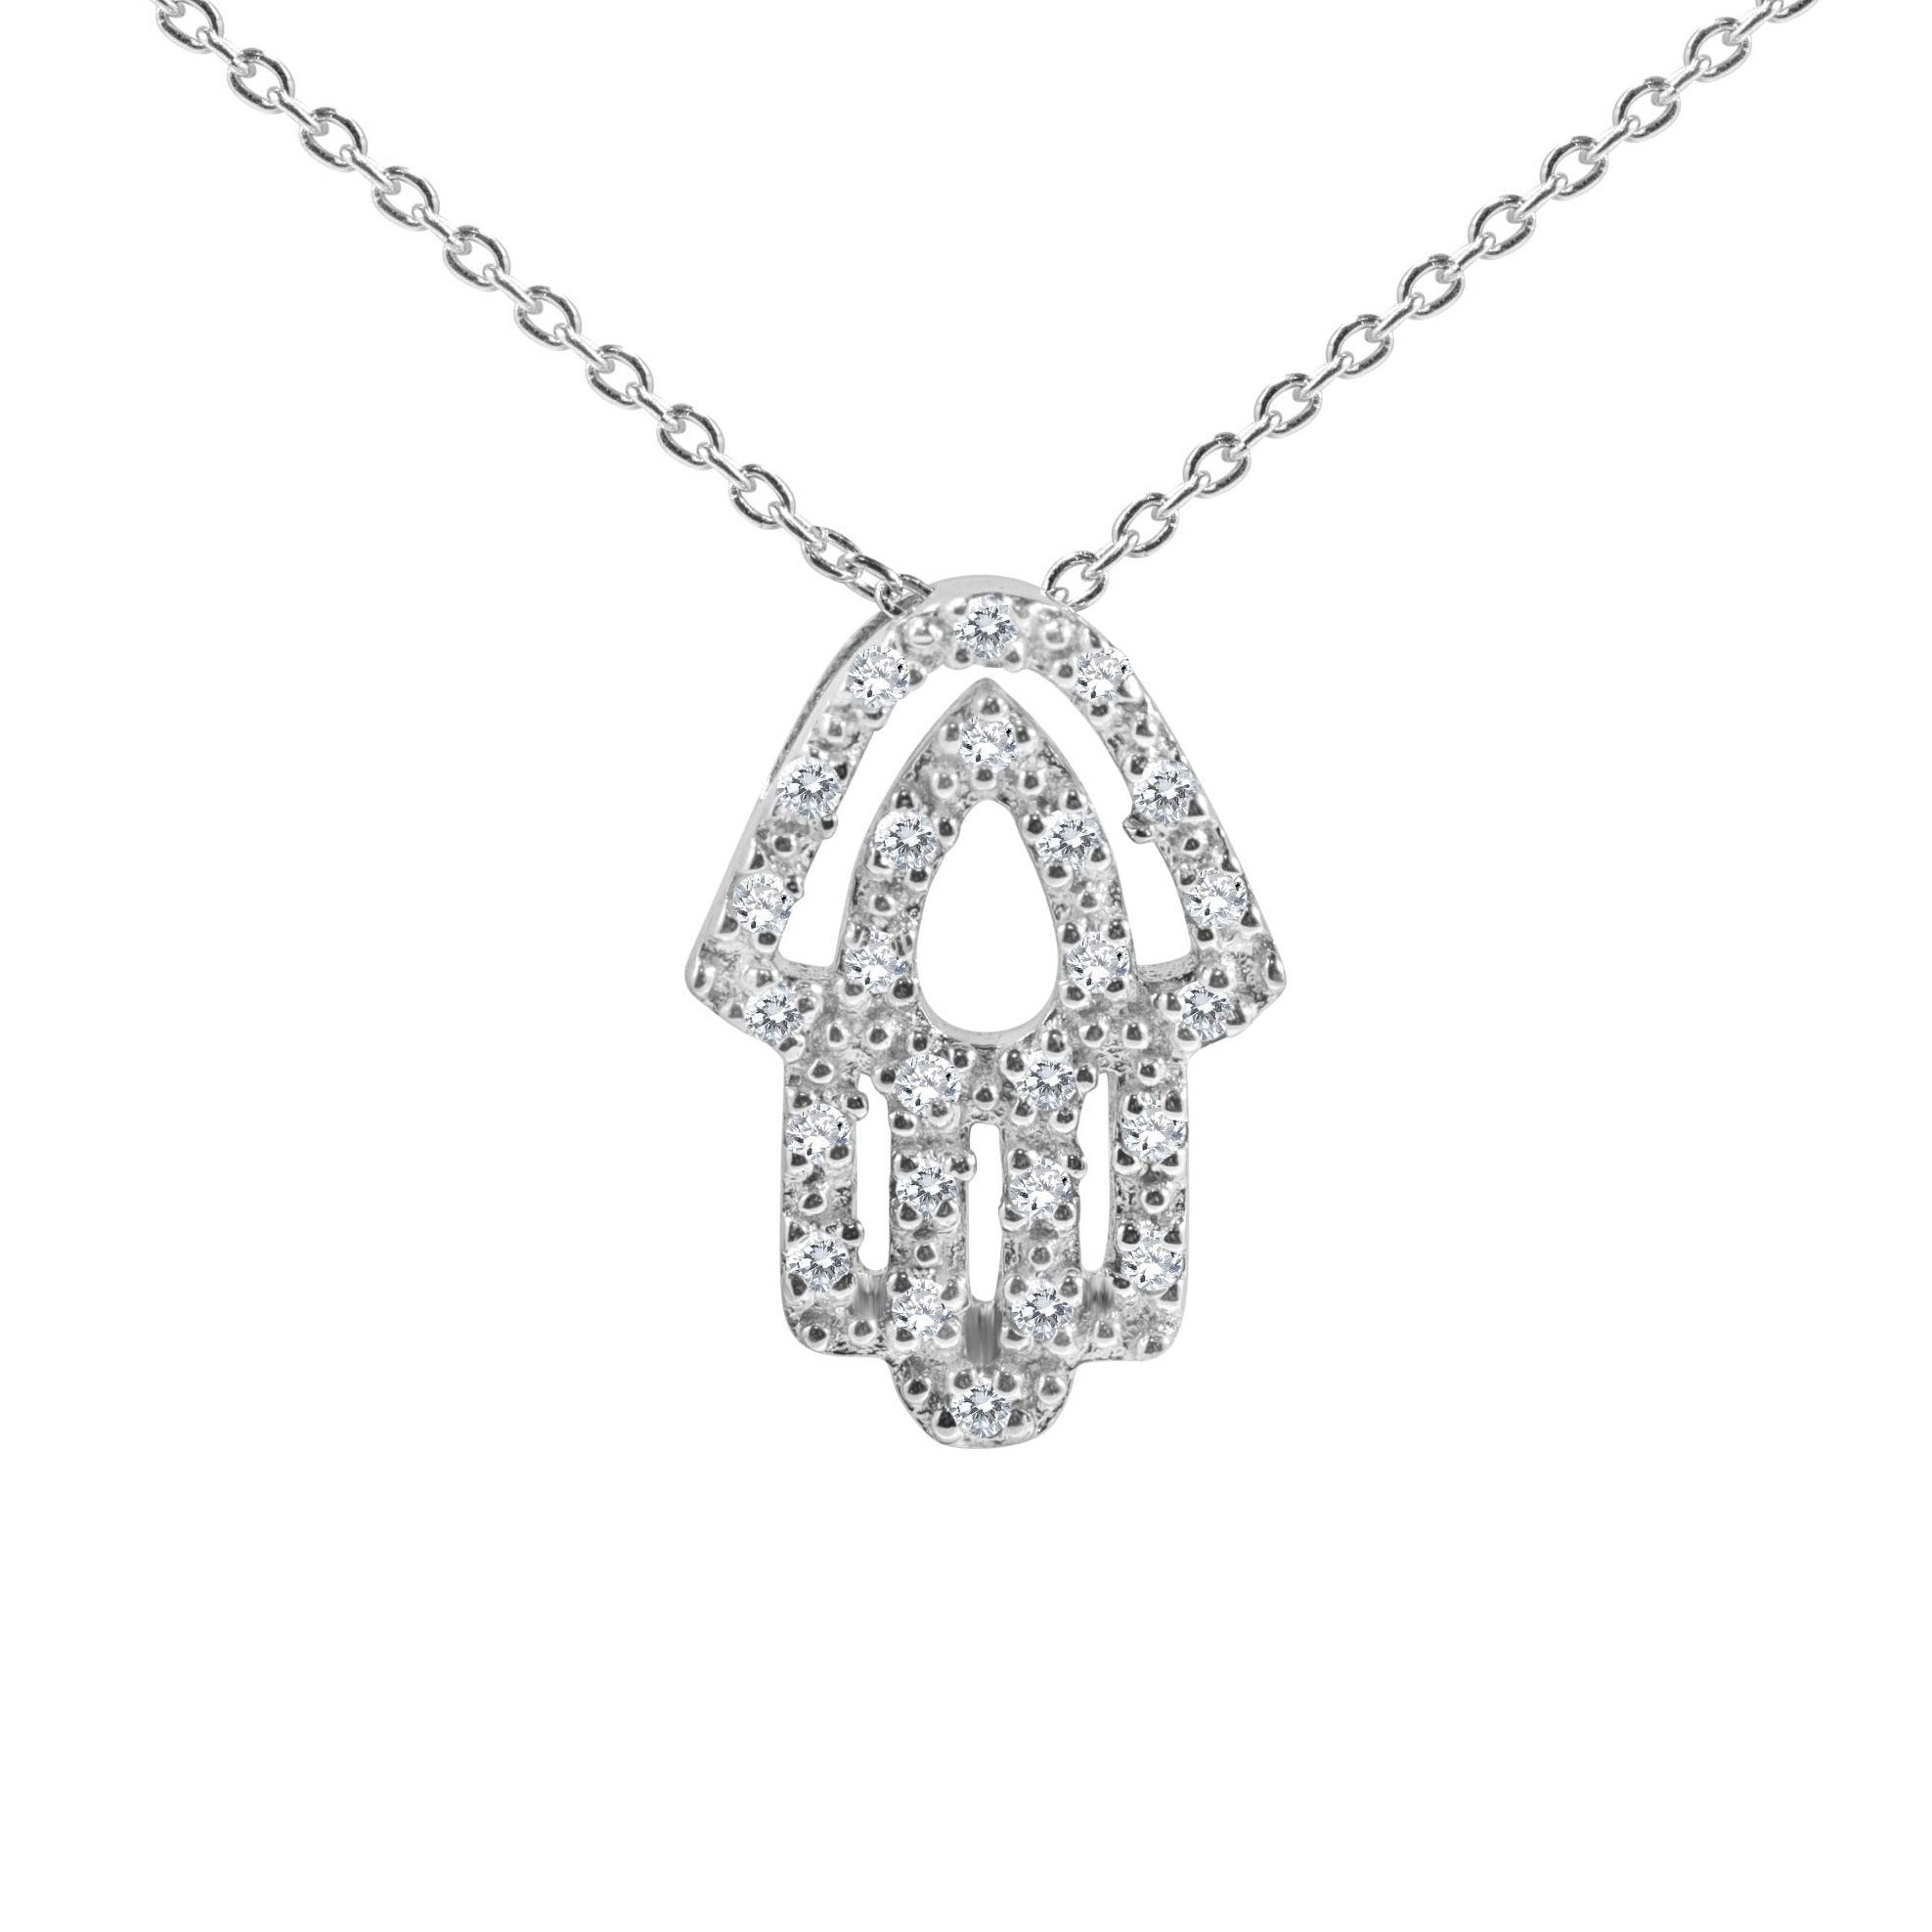 Hamsa with Diamond Necklace in 14k Gold